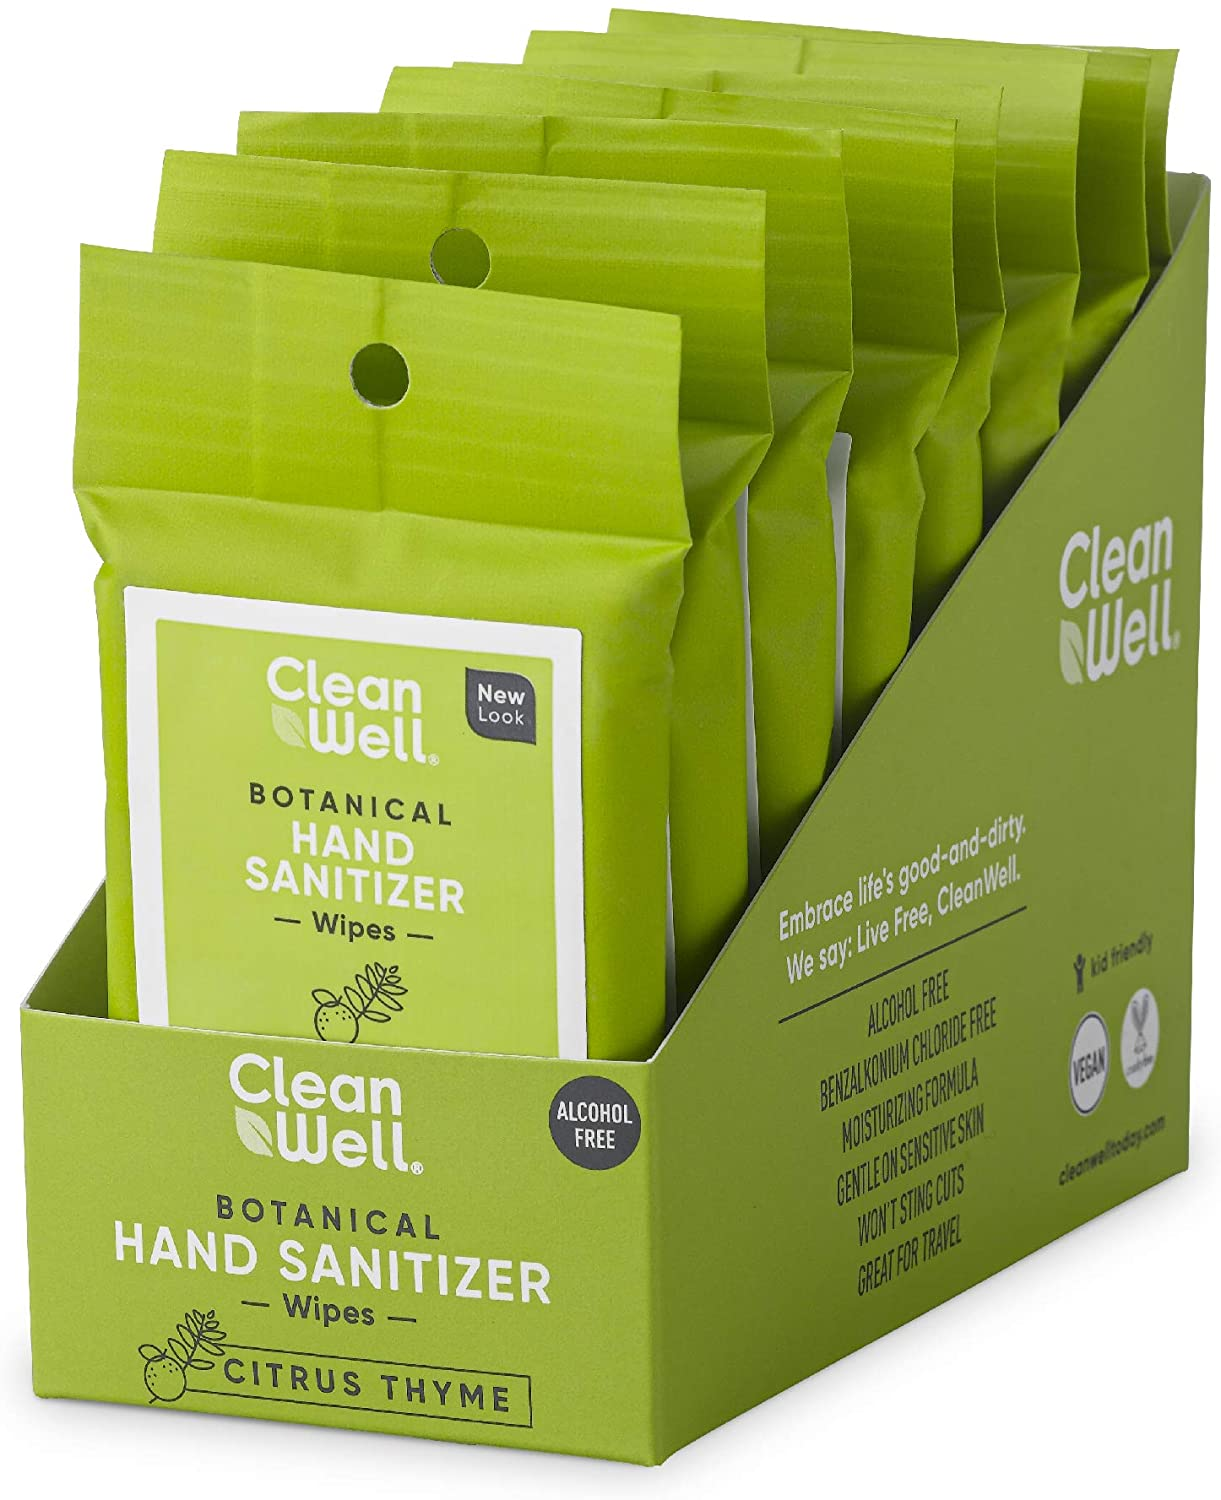 CleanWell Botanical Hand Sanitizer Wipes, Citrus Thyme, 10 count (8 PK) - Travel Size, Alcohol Free, Antibacterial, Kid Friendly, Plant-Based, Nontoxic, Cruelty Free, Moisturizing (Packaging May Vary)